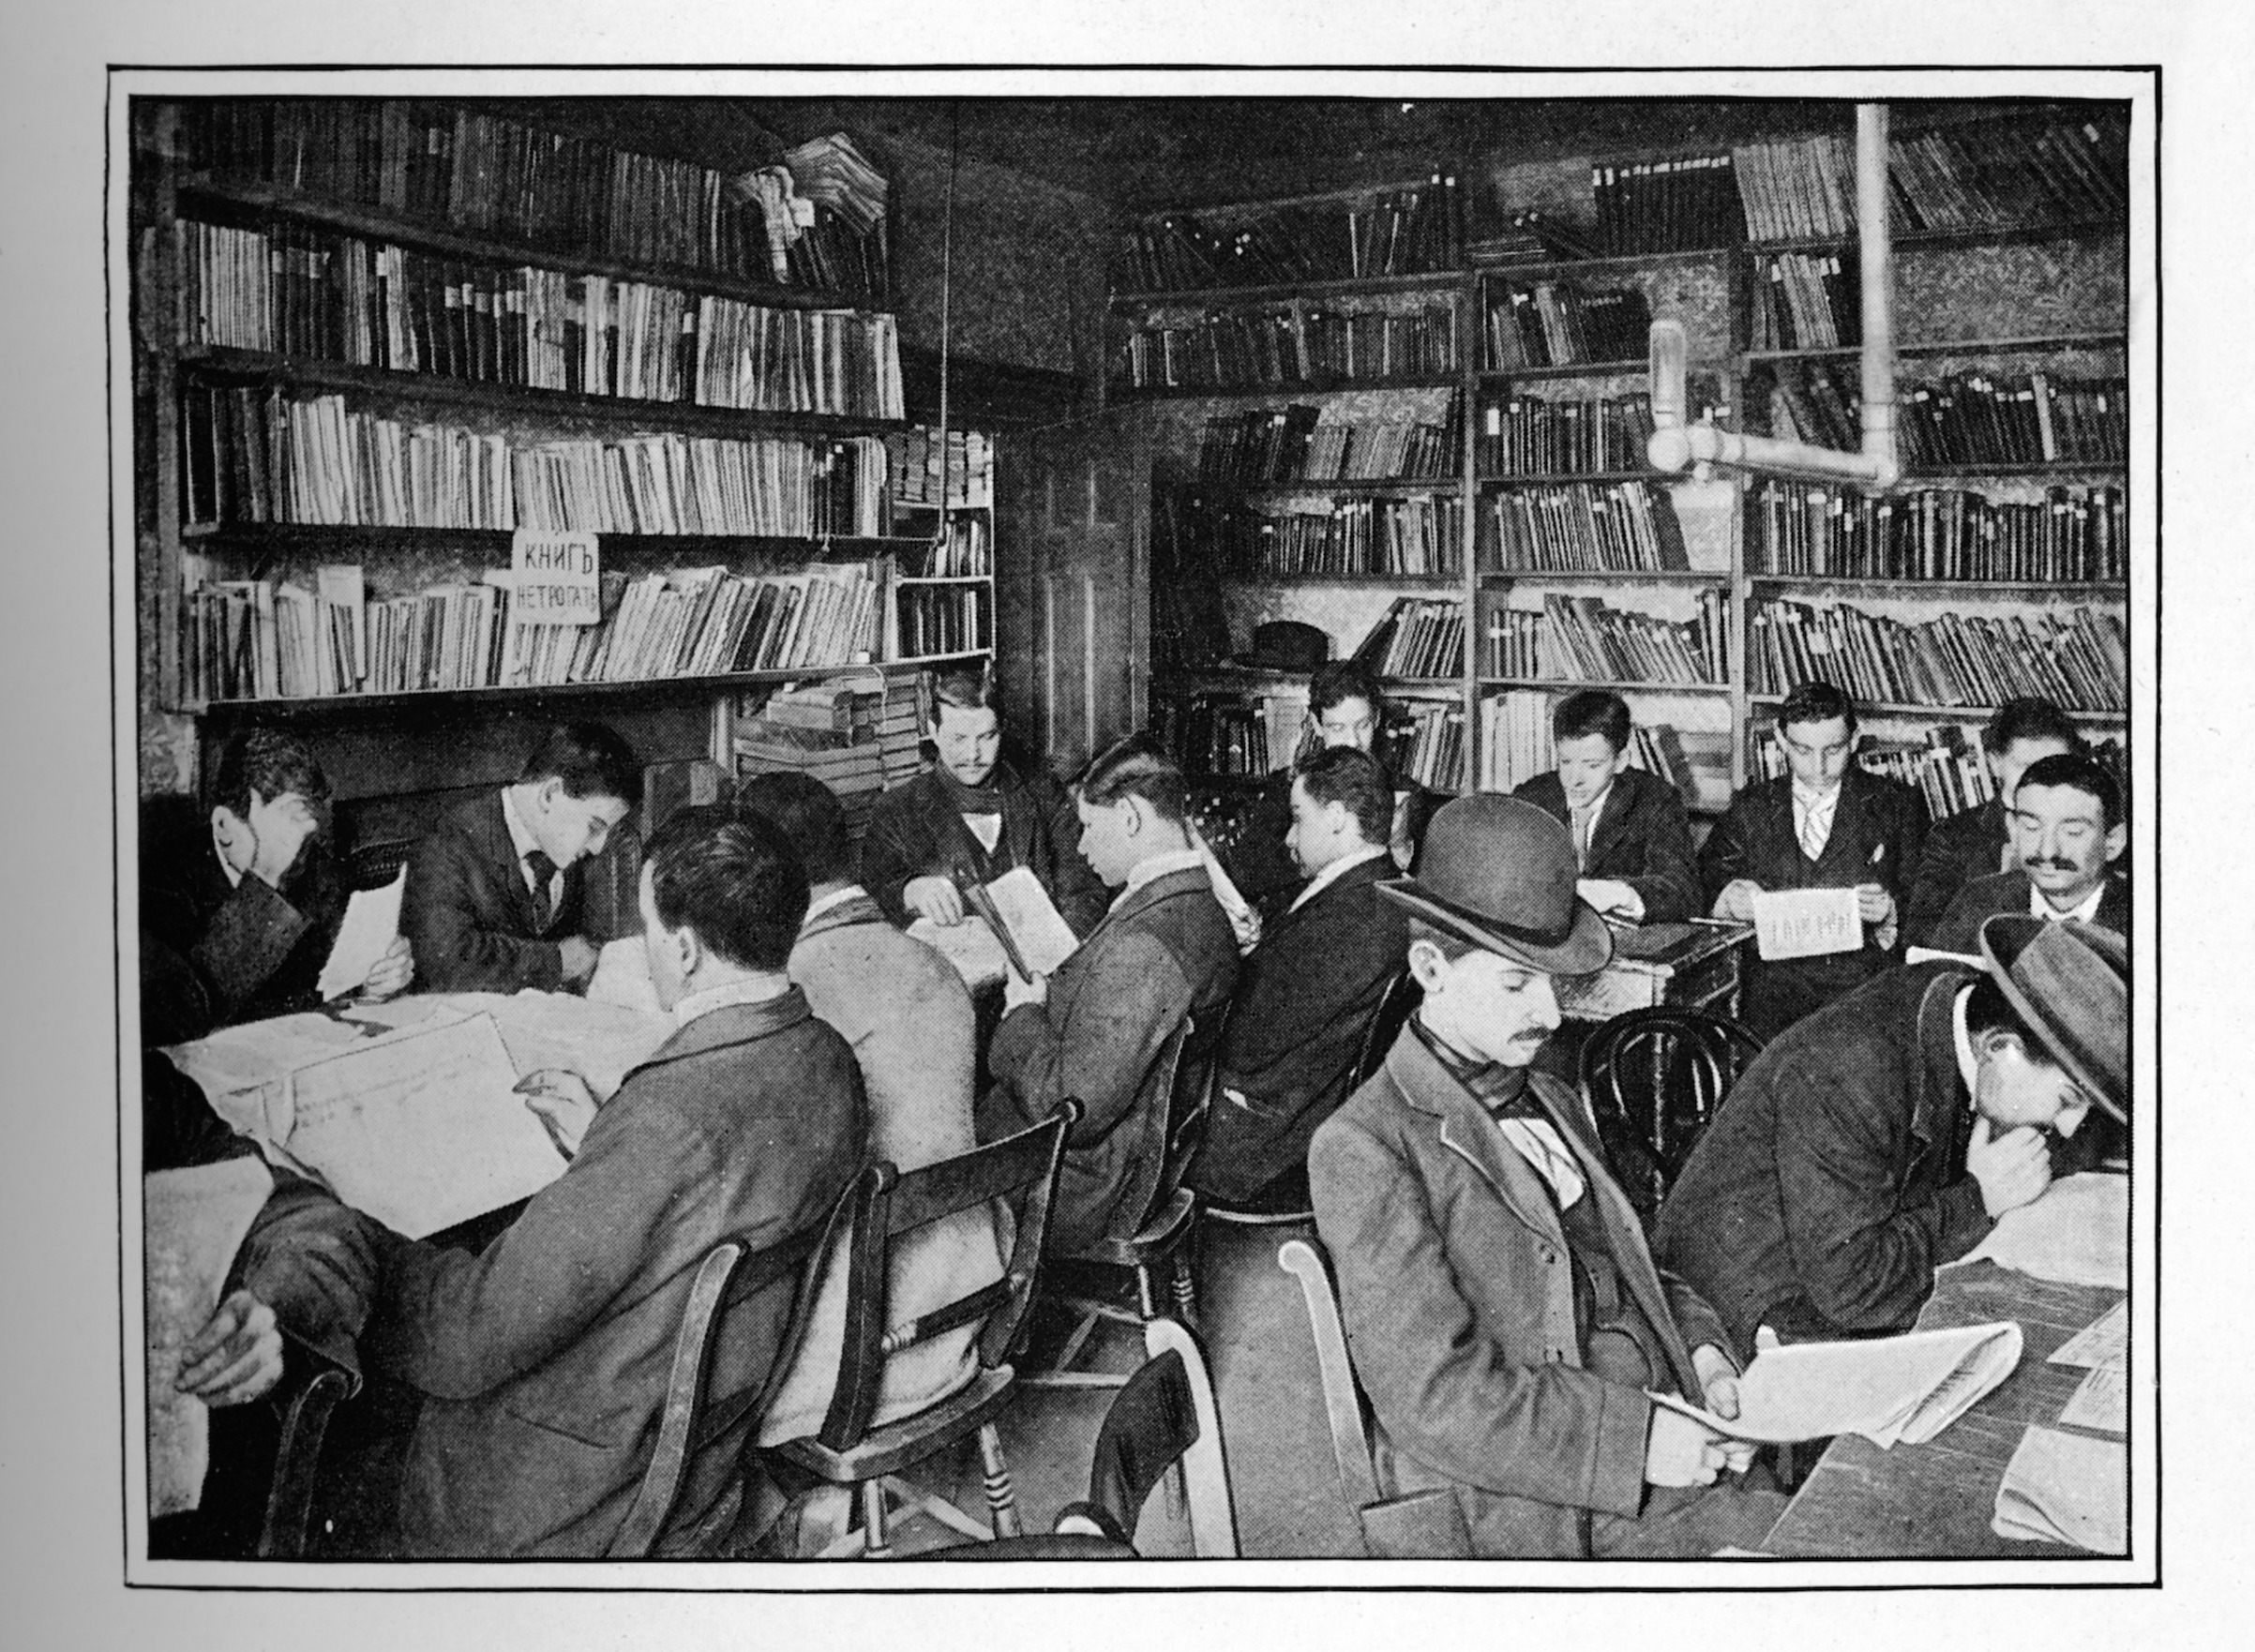 The Free Russian Library and reading room, 15 Whitechapel Road, Stepney, London, circa 1901 (1901). The Free Russian Library provided Russian emigres living in London with access to Russian literature.